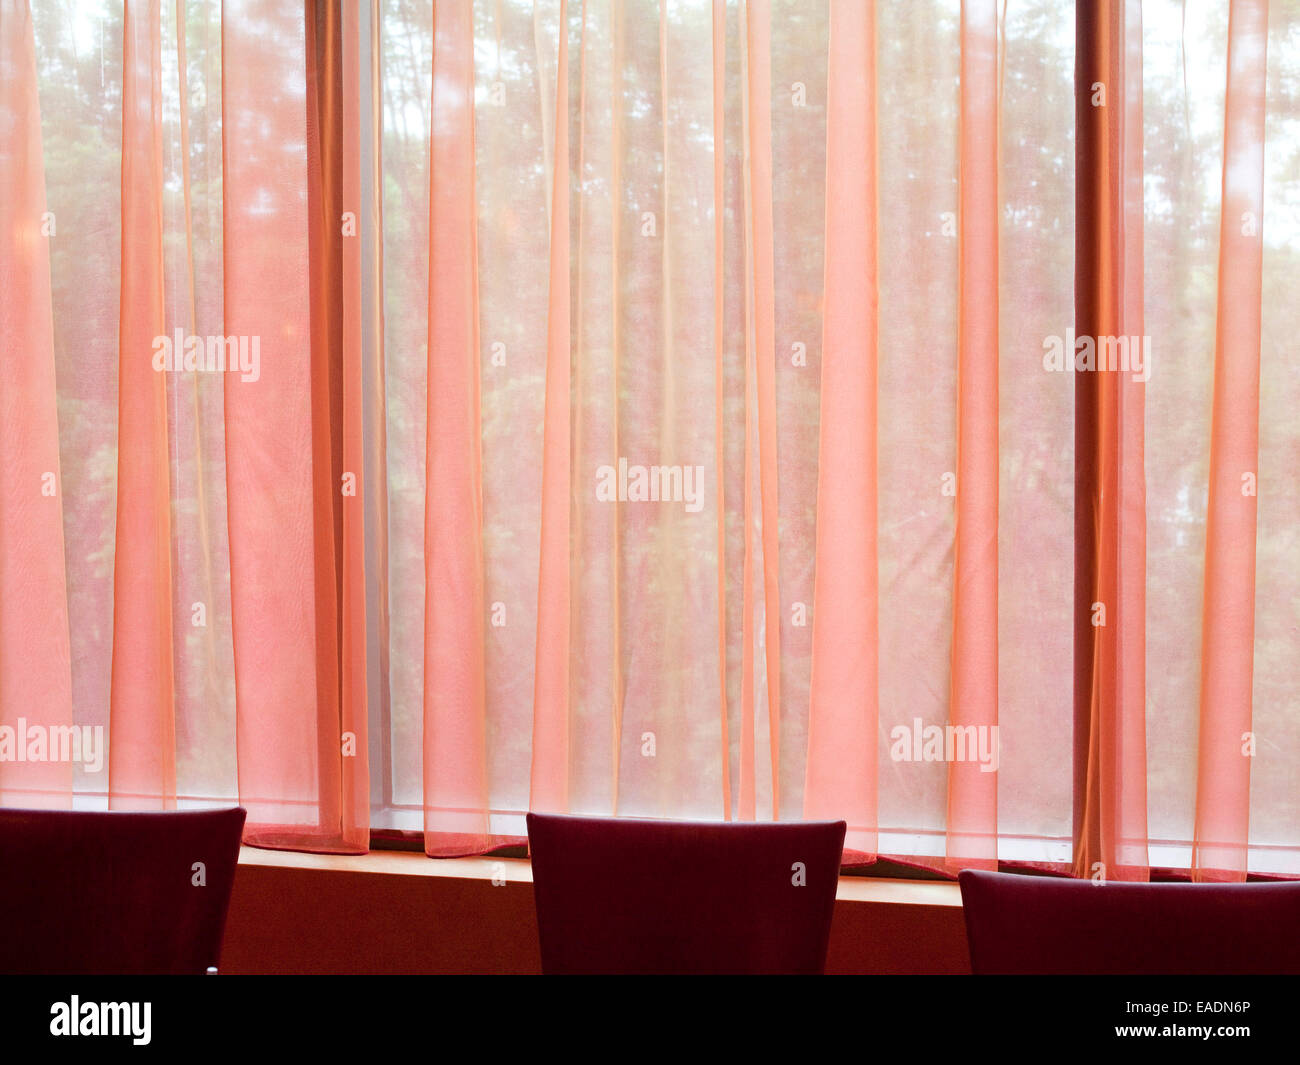 curtains stockfotos curtains bilder alamy. Black Bedroom Furniture Sets. Home Design Ideas